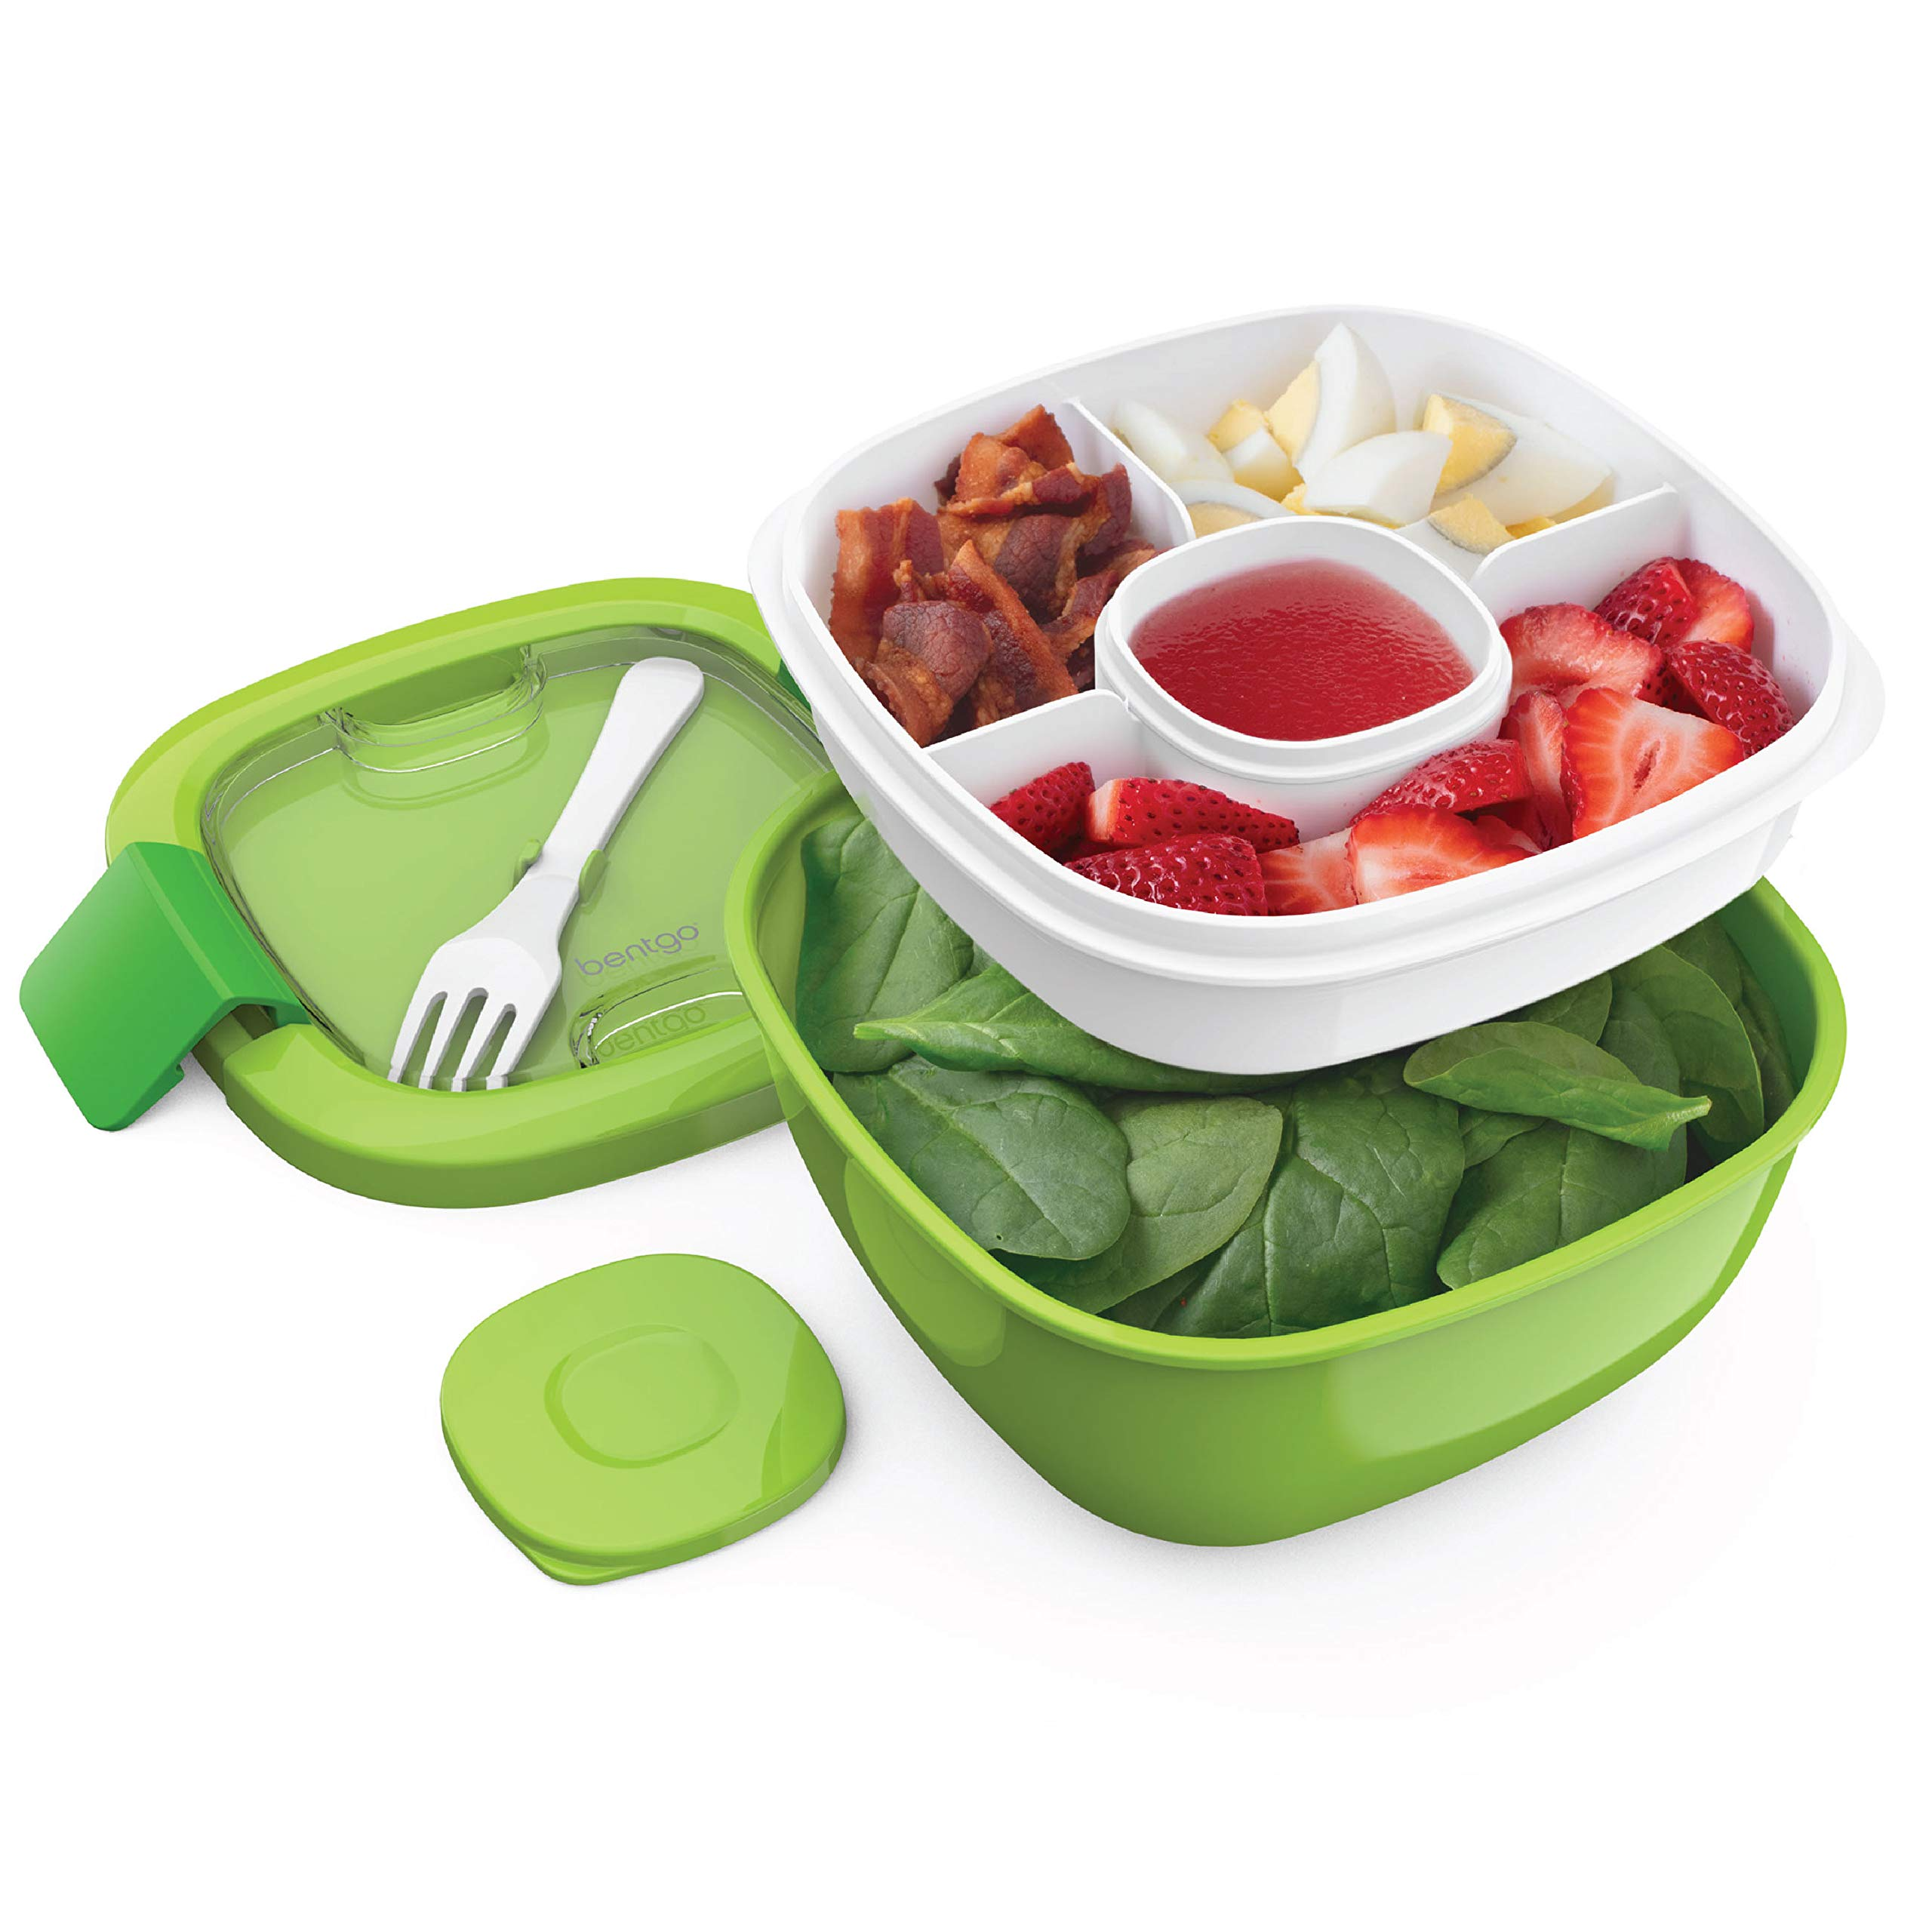 Bentgo Salad (Green) BPA-Free Lunch Container with Large 54-oz Salad Bowl, 3-Compartment Bento-Style Tray for Salad Toppings and Snacks, 3-oz Sauce Container for Dressings, and Built-In Reusable Fork